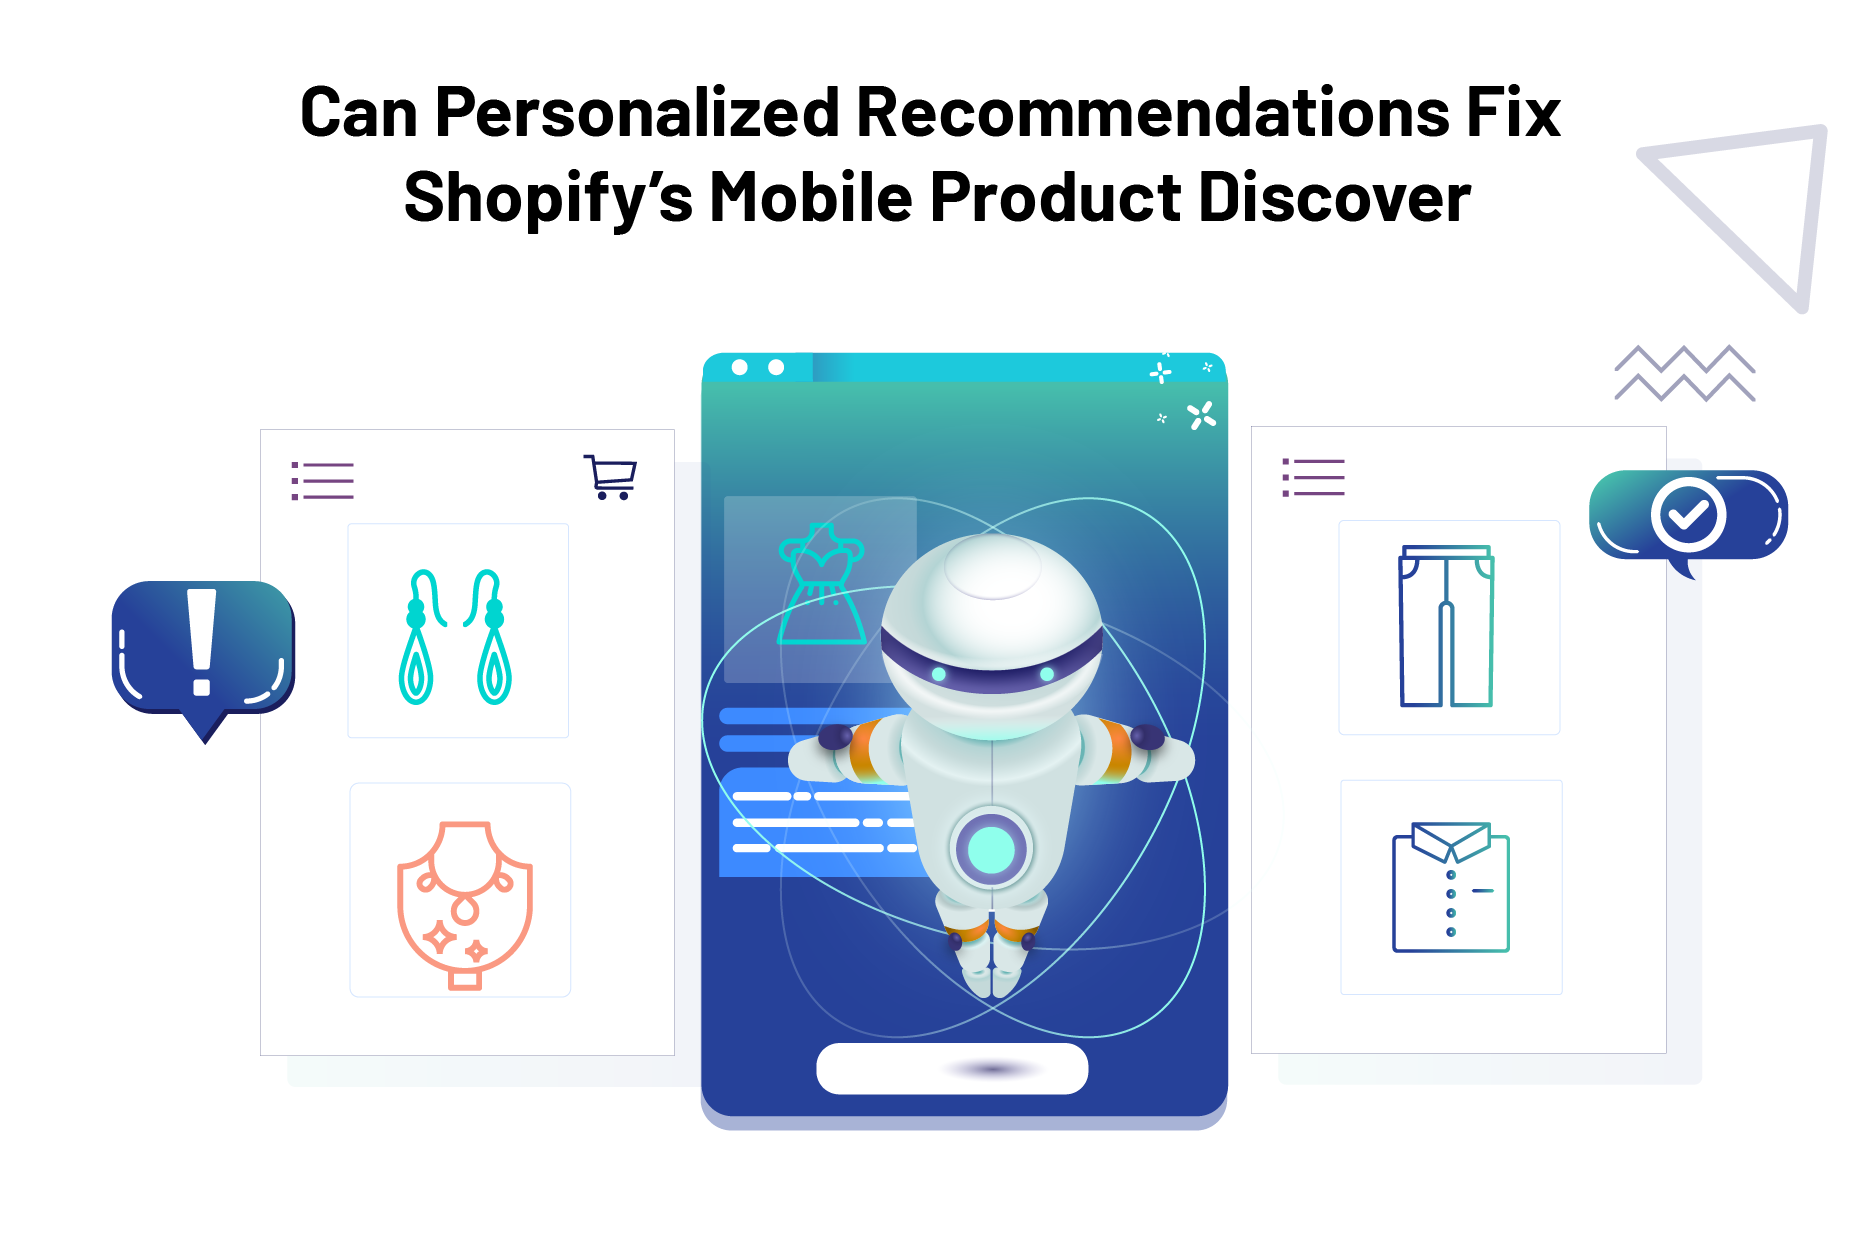 Shopify Mobile Product Discovery